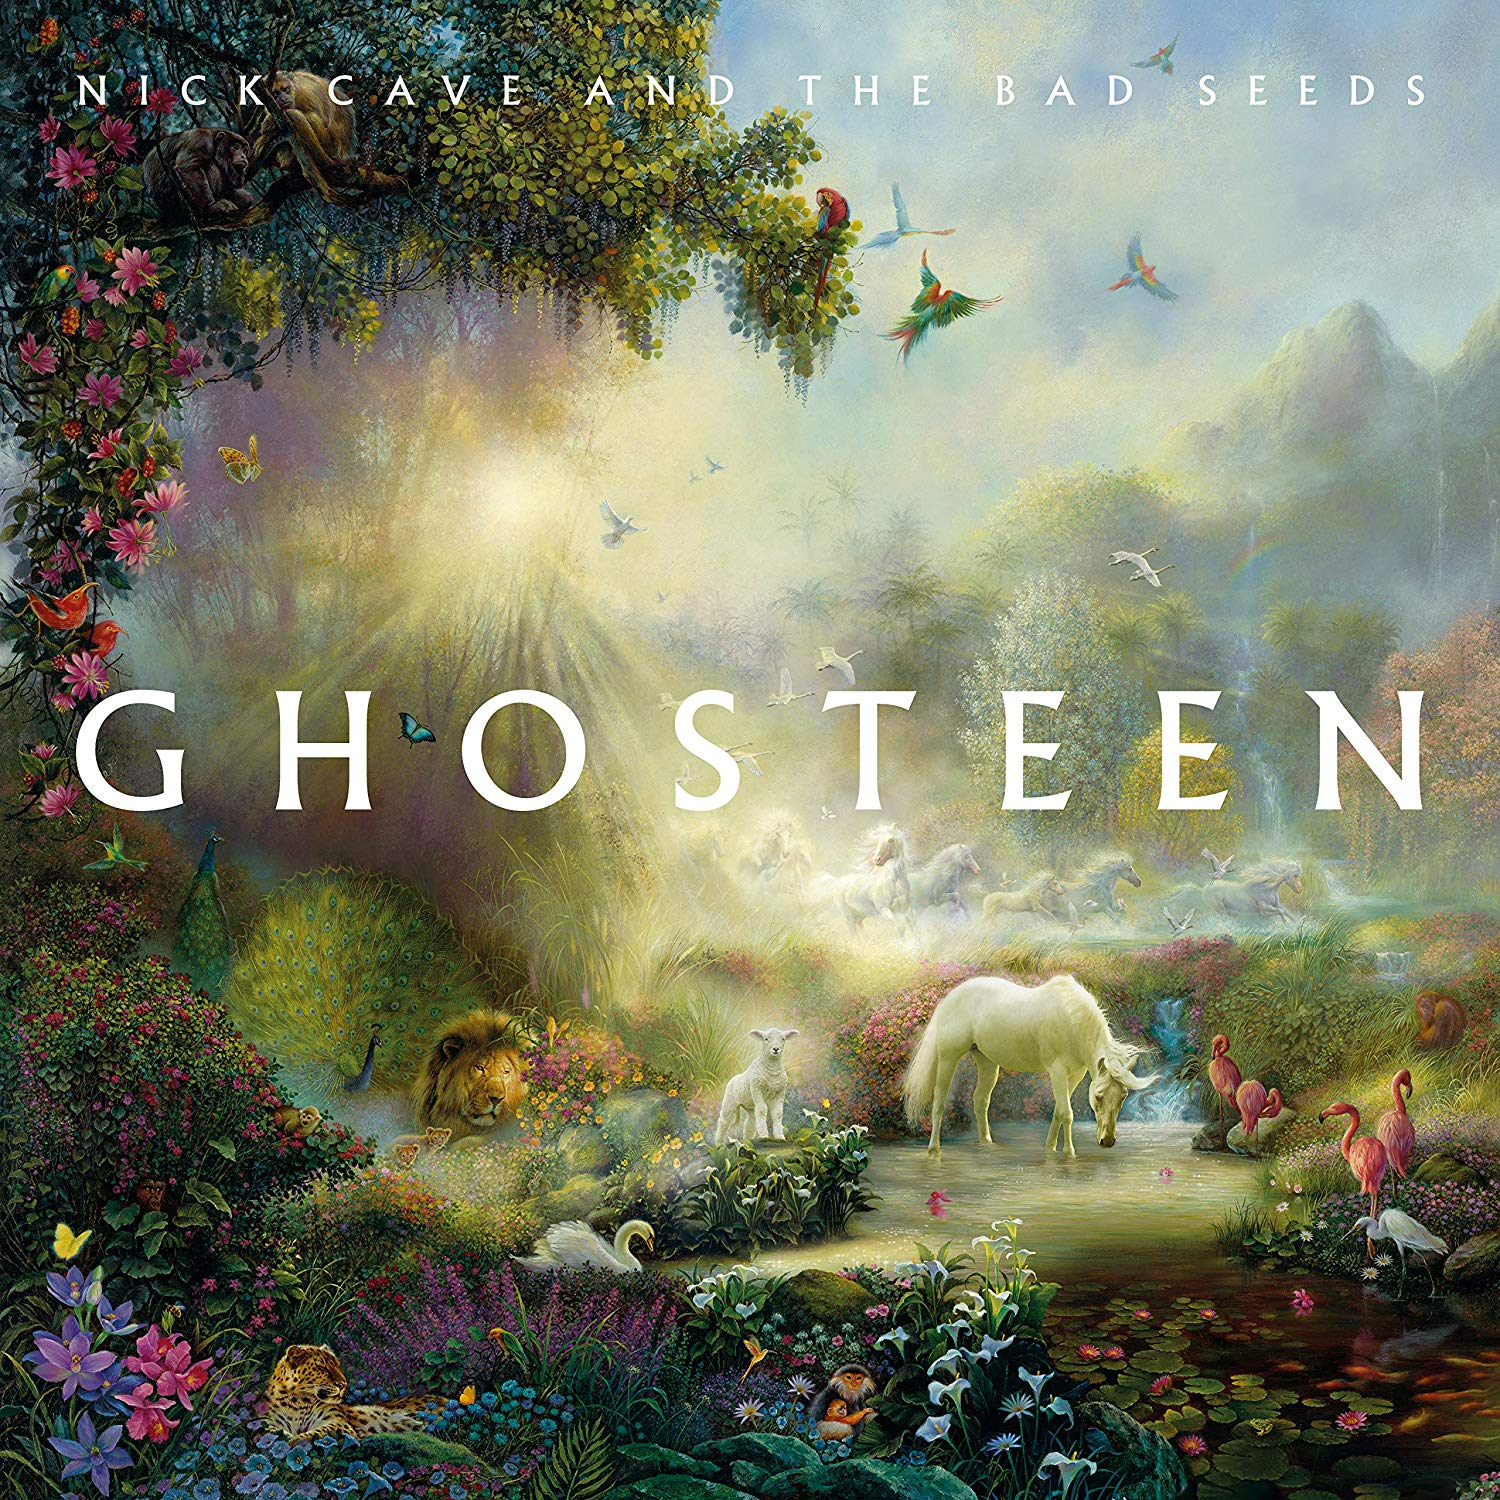 New Album Releases: GHOSTEEN (Nick Cave & The Bad Seeds